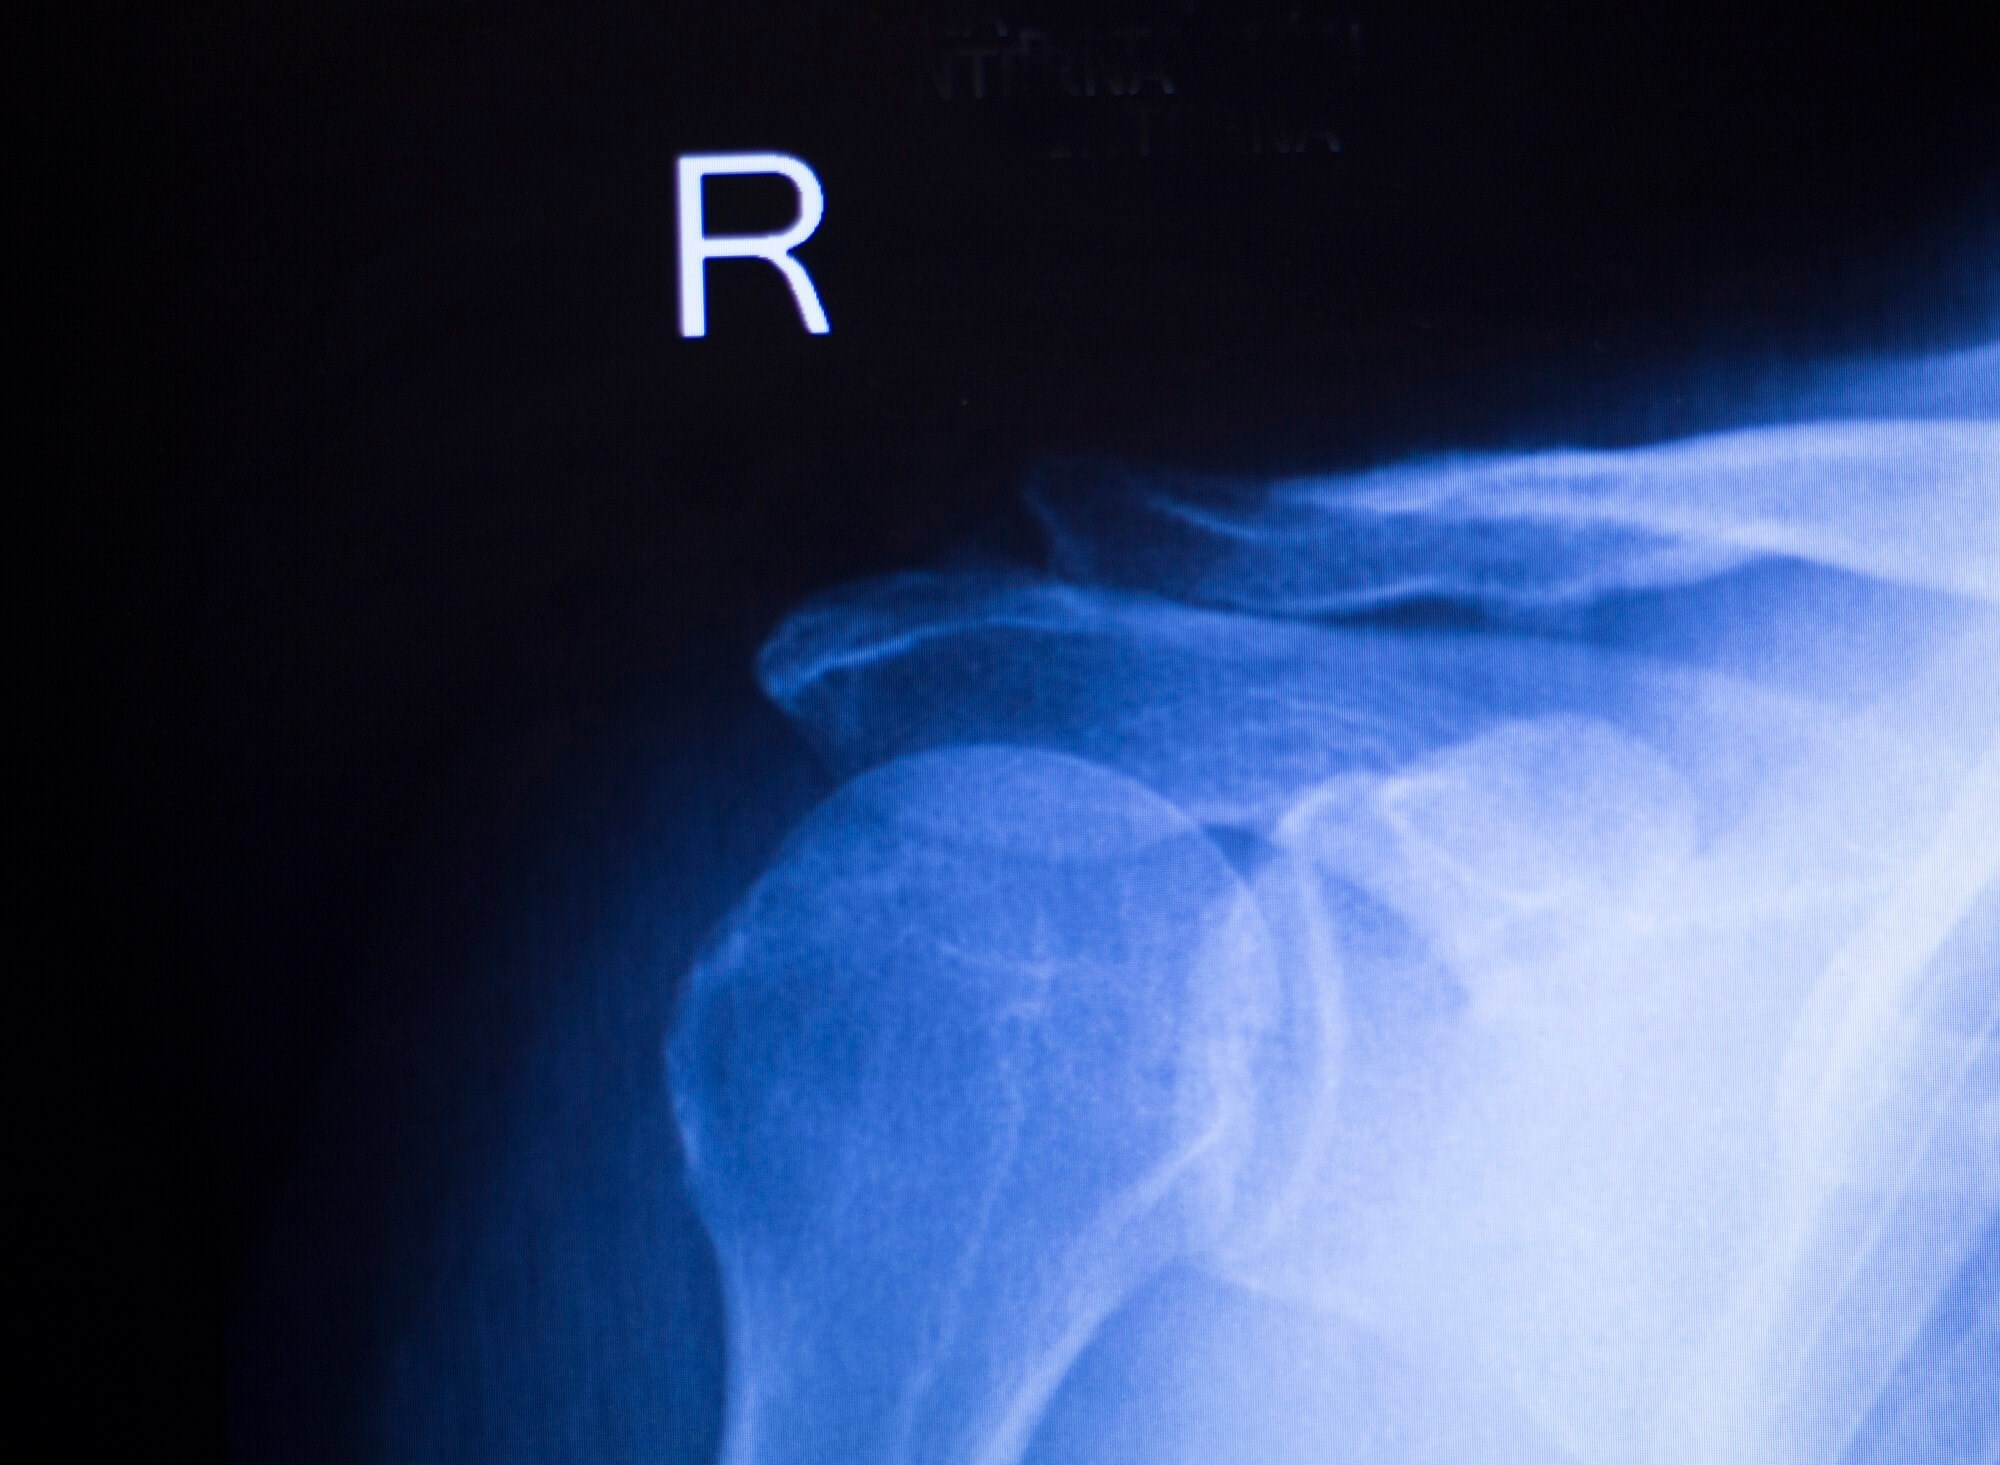 Upper Limb Joint Replacements Decreasing Among Patients With RA